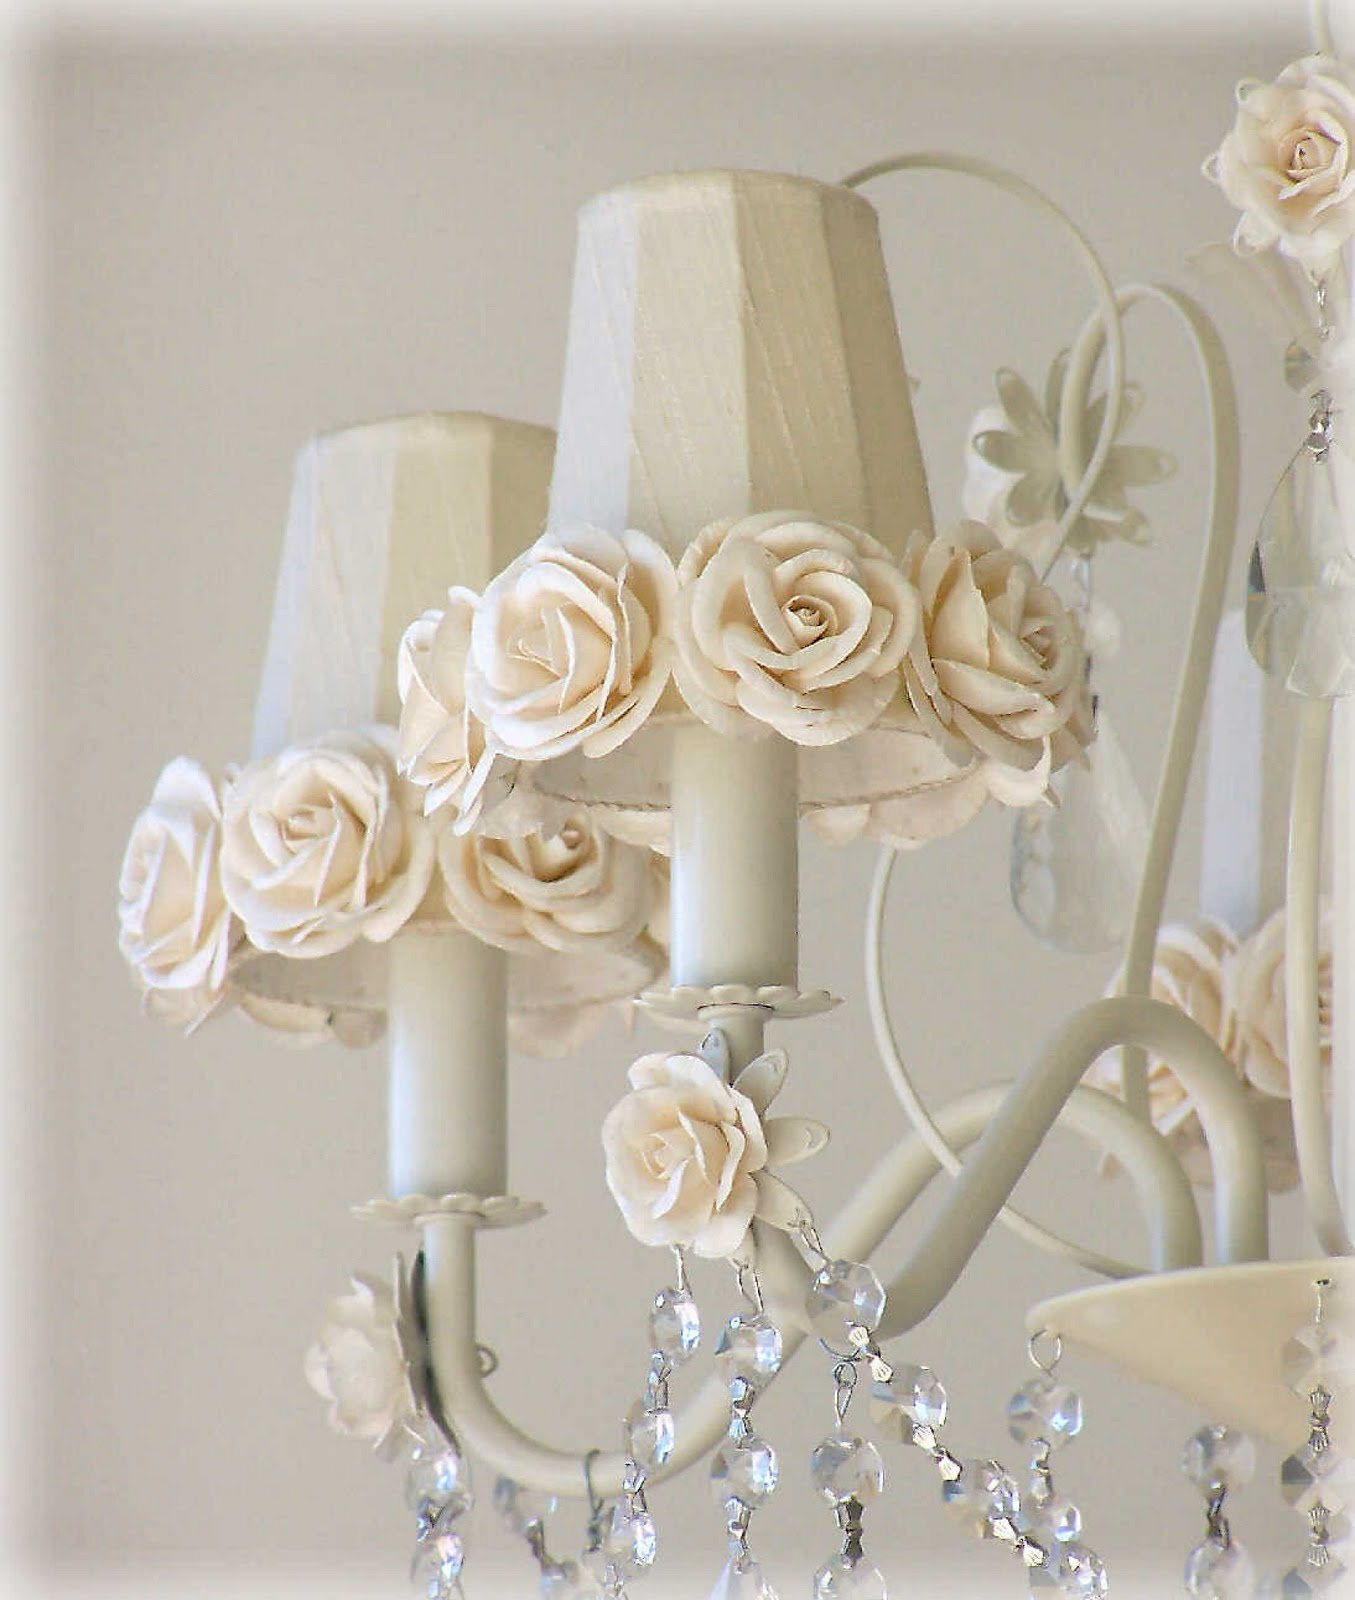 Trendy Chandeliers: Lavender Fields A Lifestyle Store: New Shabby Romantic